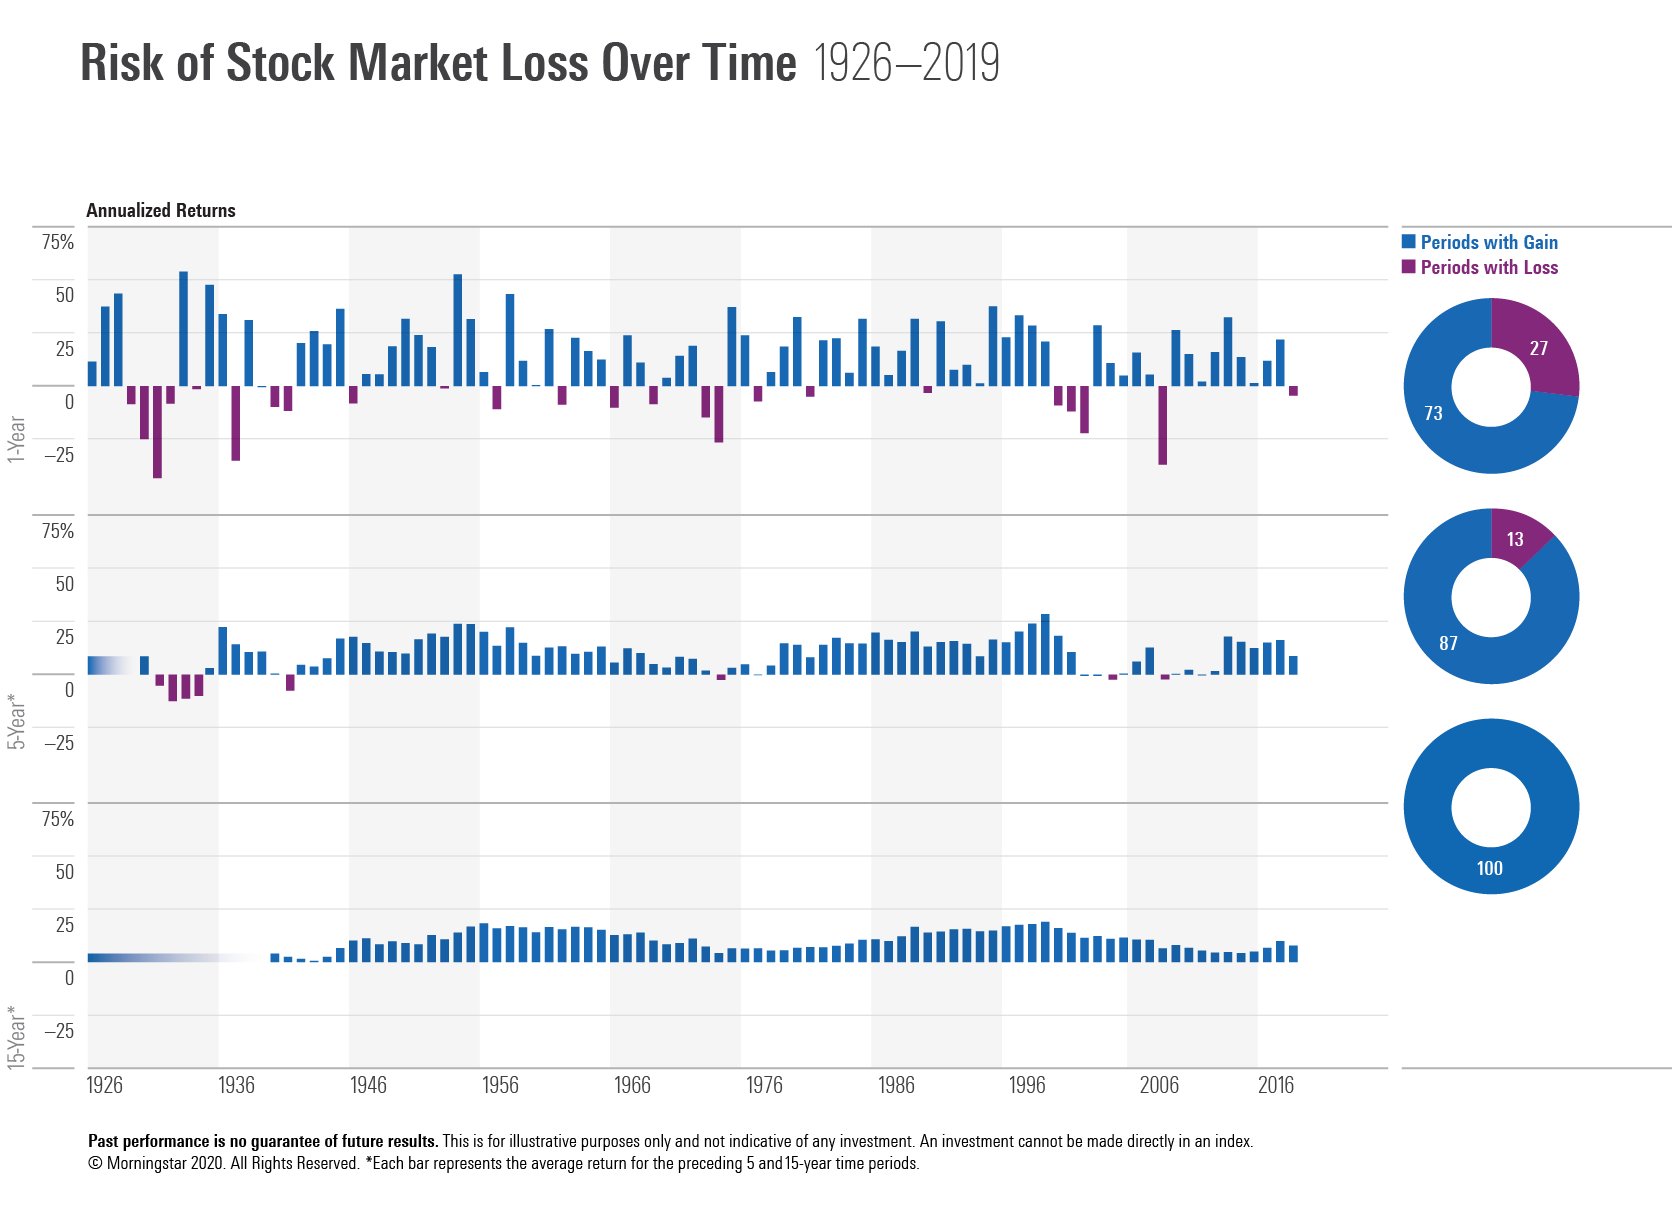 Risk of stockmarket loss over time